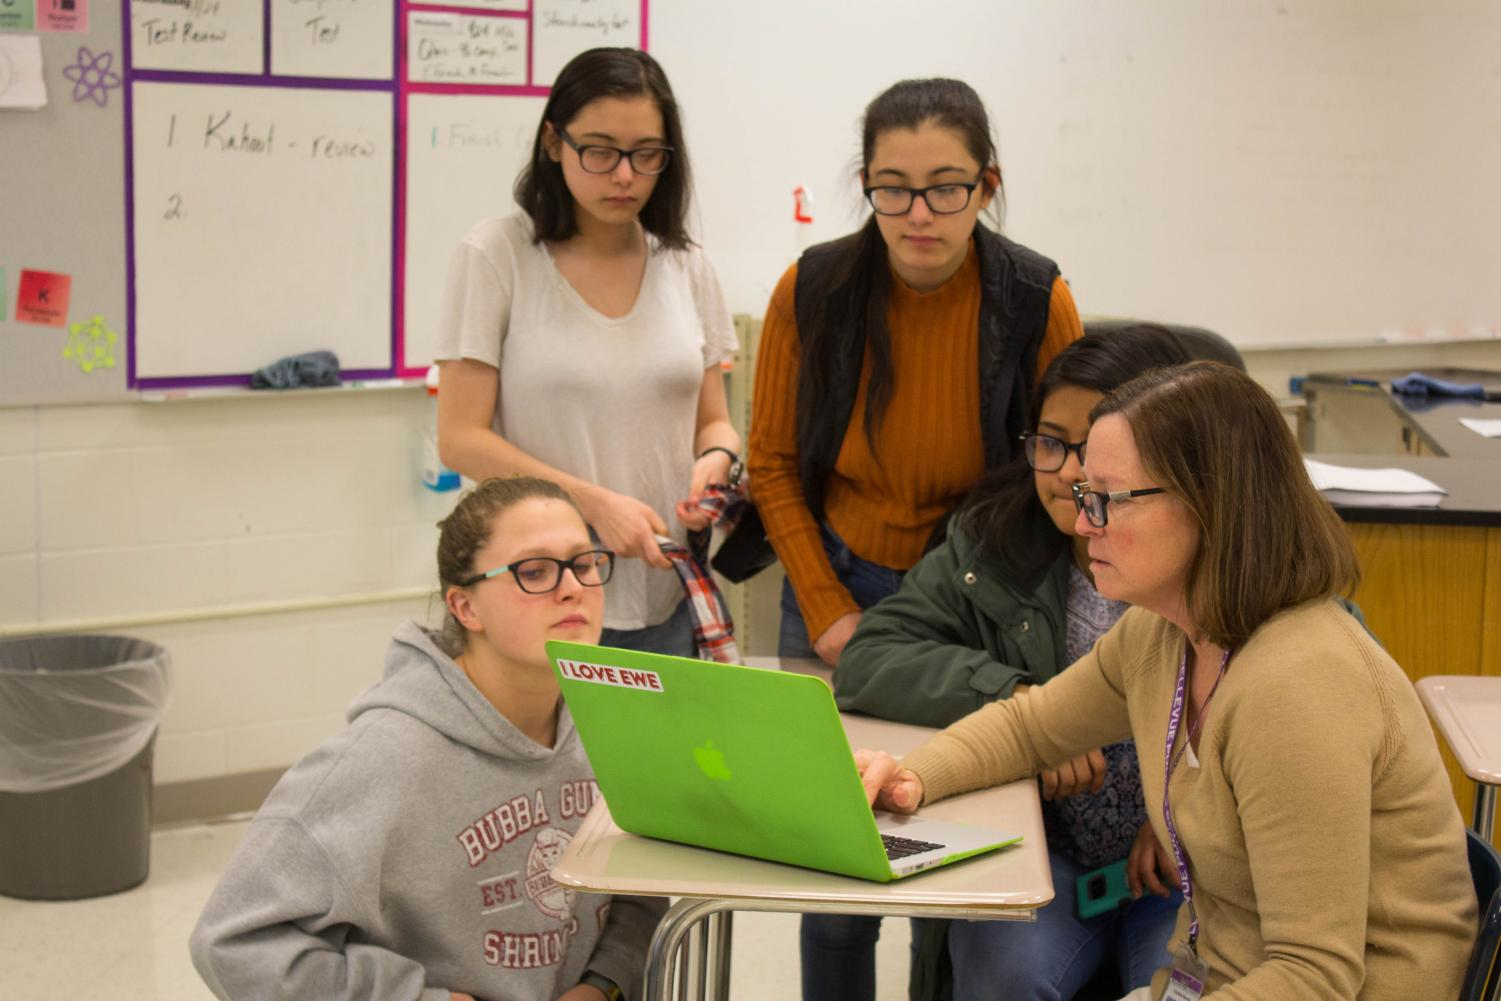 Club members Brittany Horbach, Abby Buddhacharya, Jaque Armas, and Ashley Buddhacarya discuss options for fragrance oils.